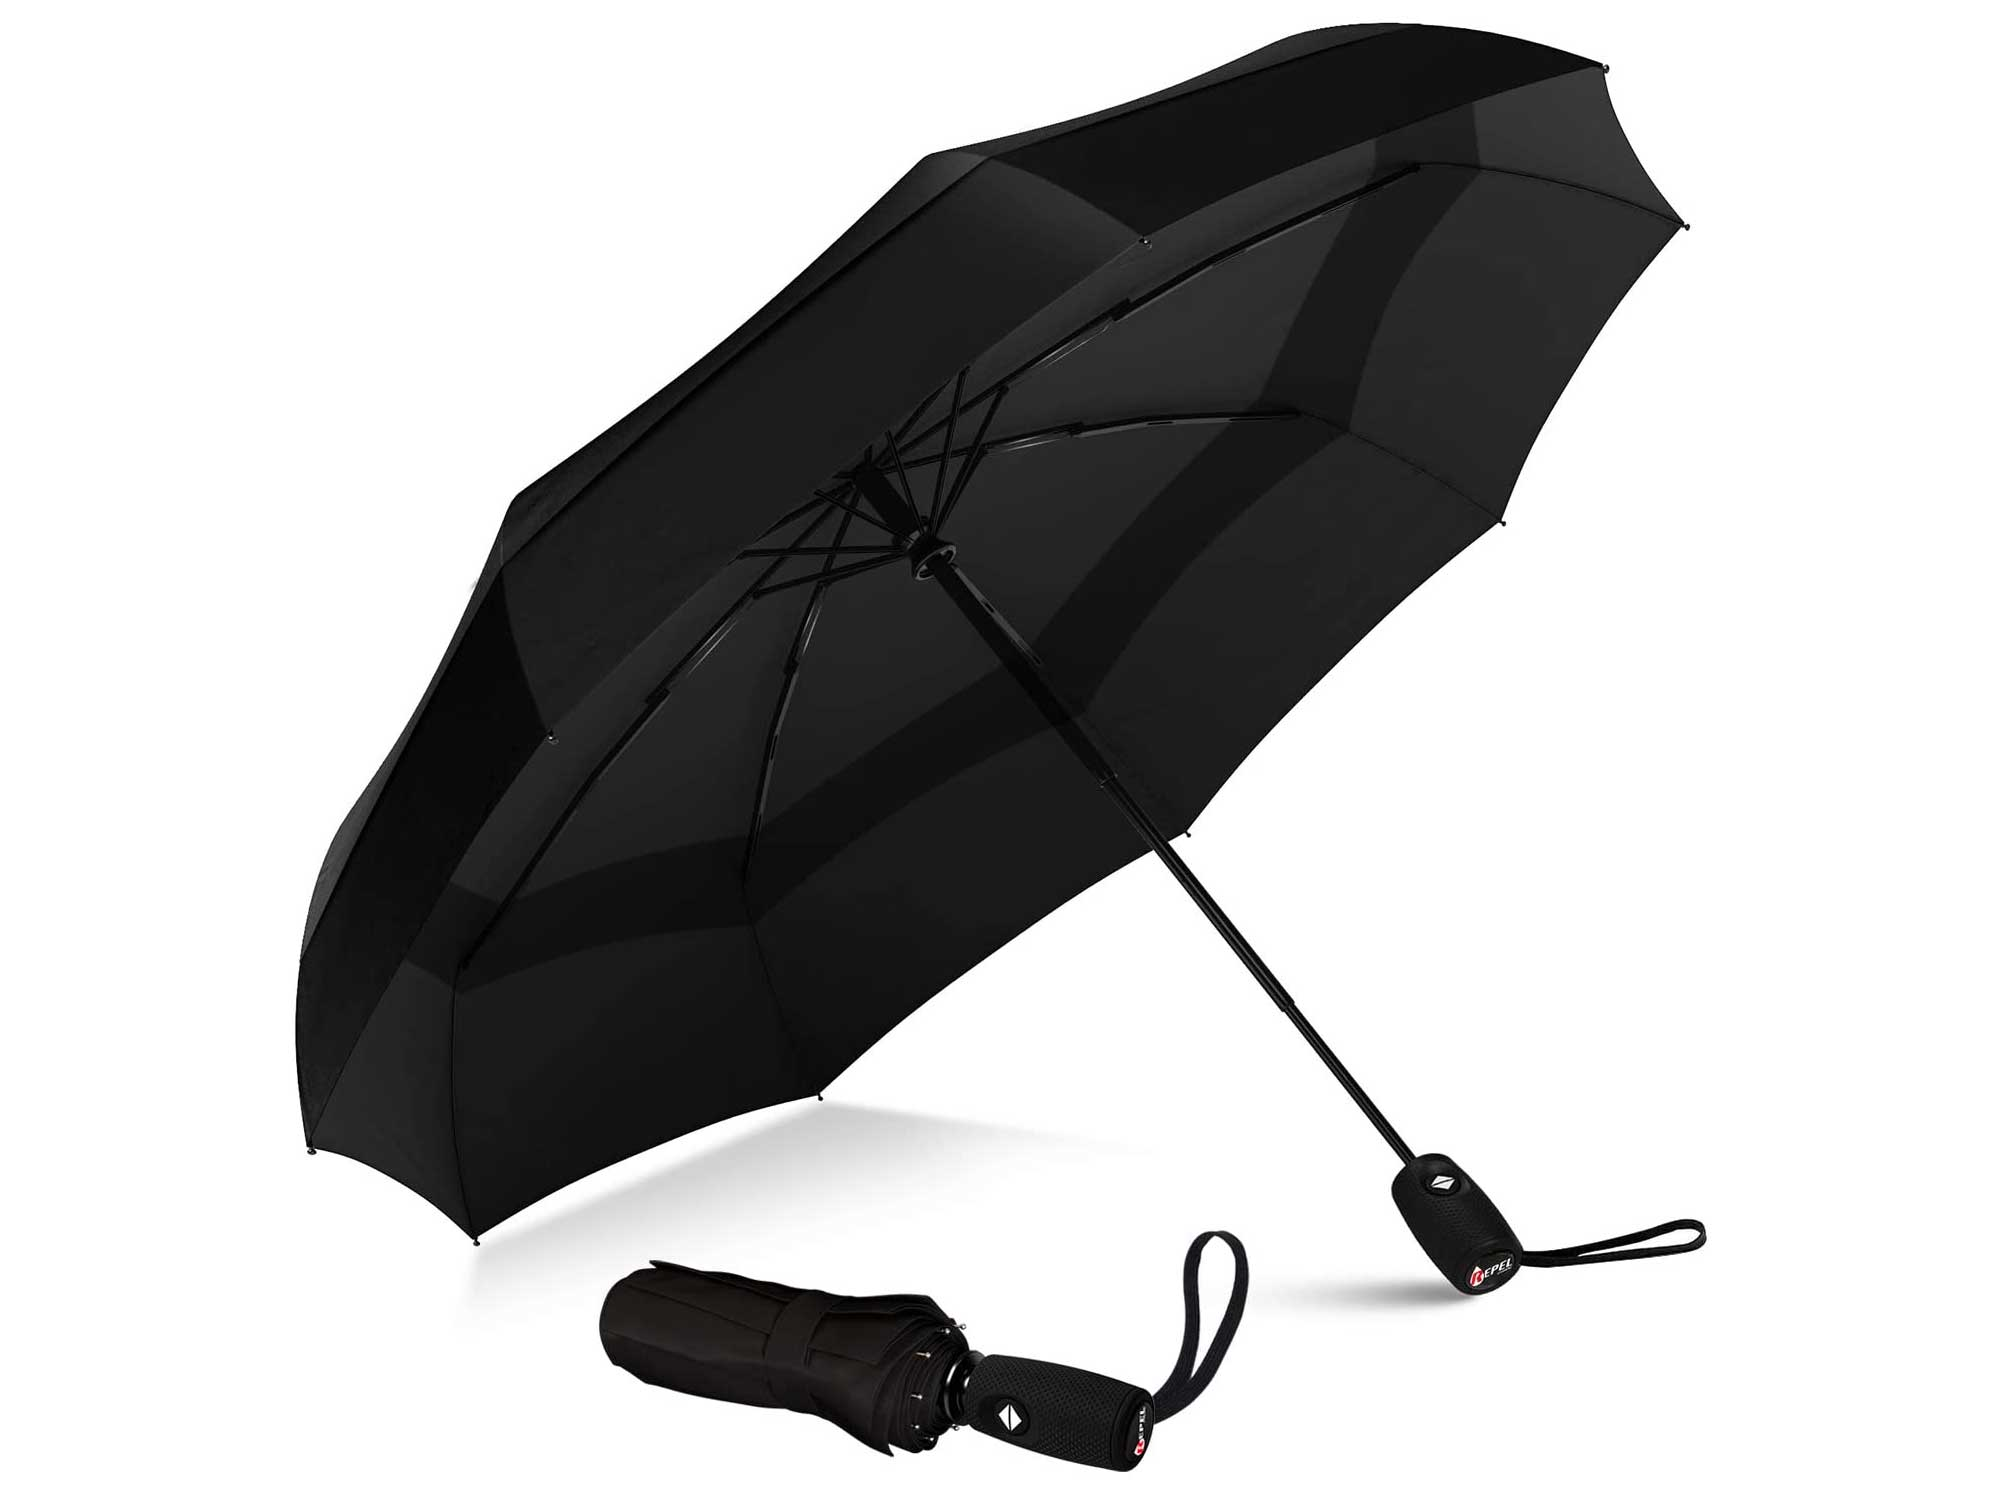 Repel Umbrella Windproof Double Vented Travel Umbrella with Teflon Coating (Black)